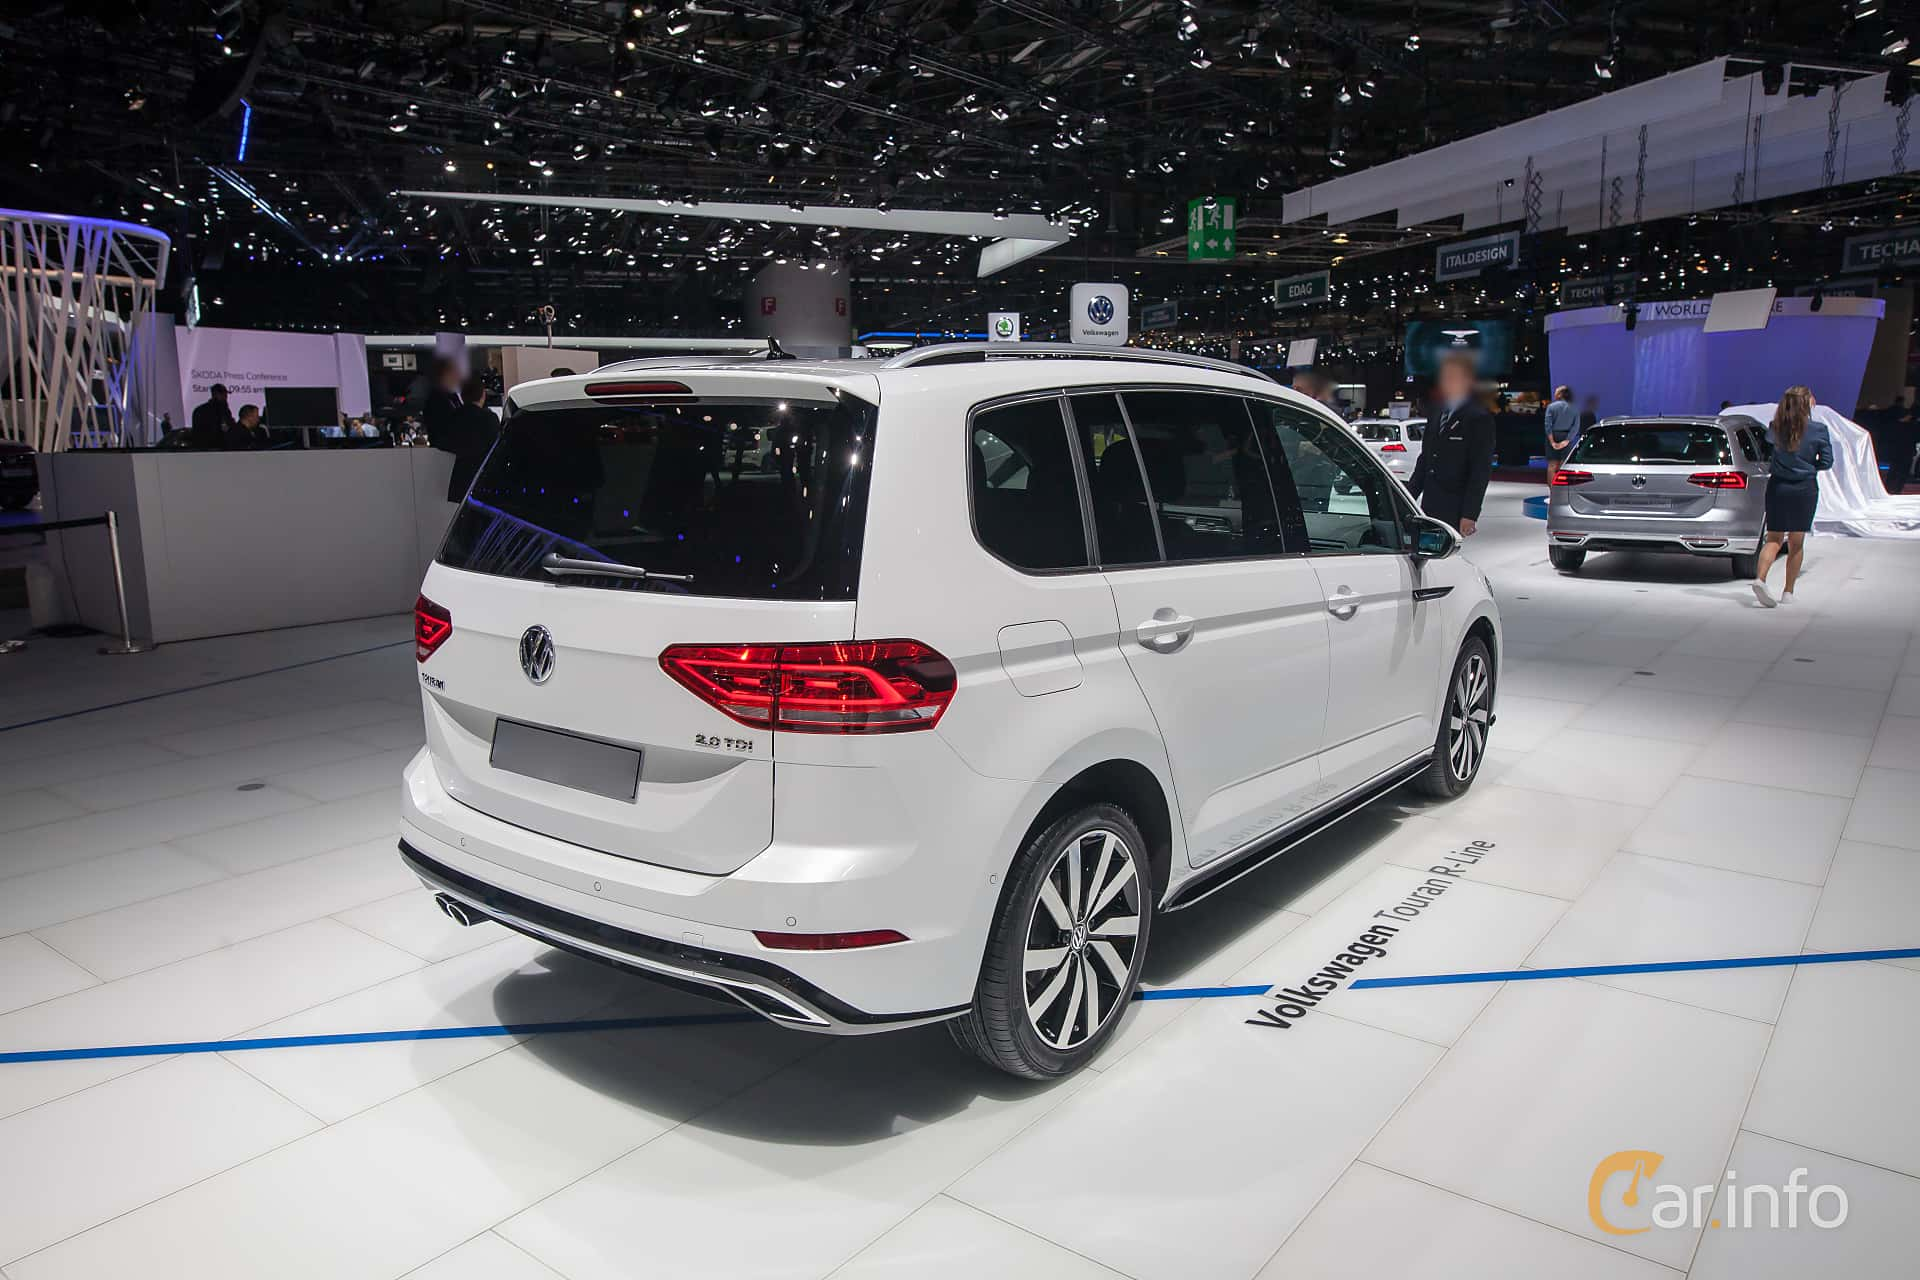 volkswagen touran 2 0 tdi dsg sequential 190hp 2017 at geneva motor show 2017. Black Bedroom Furniture Sets. Home Design Ideas